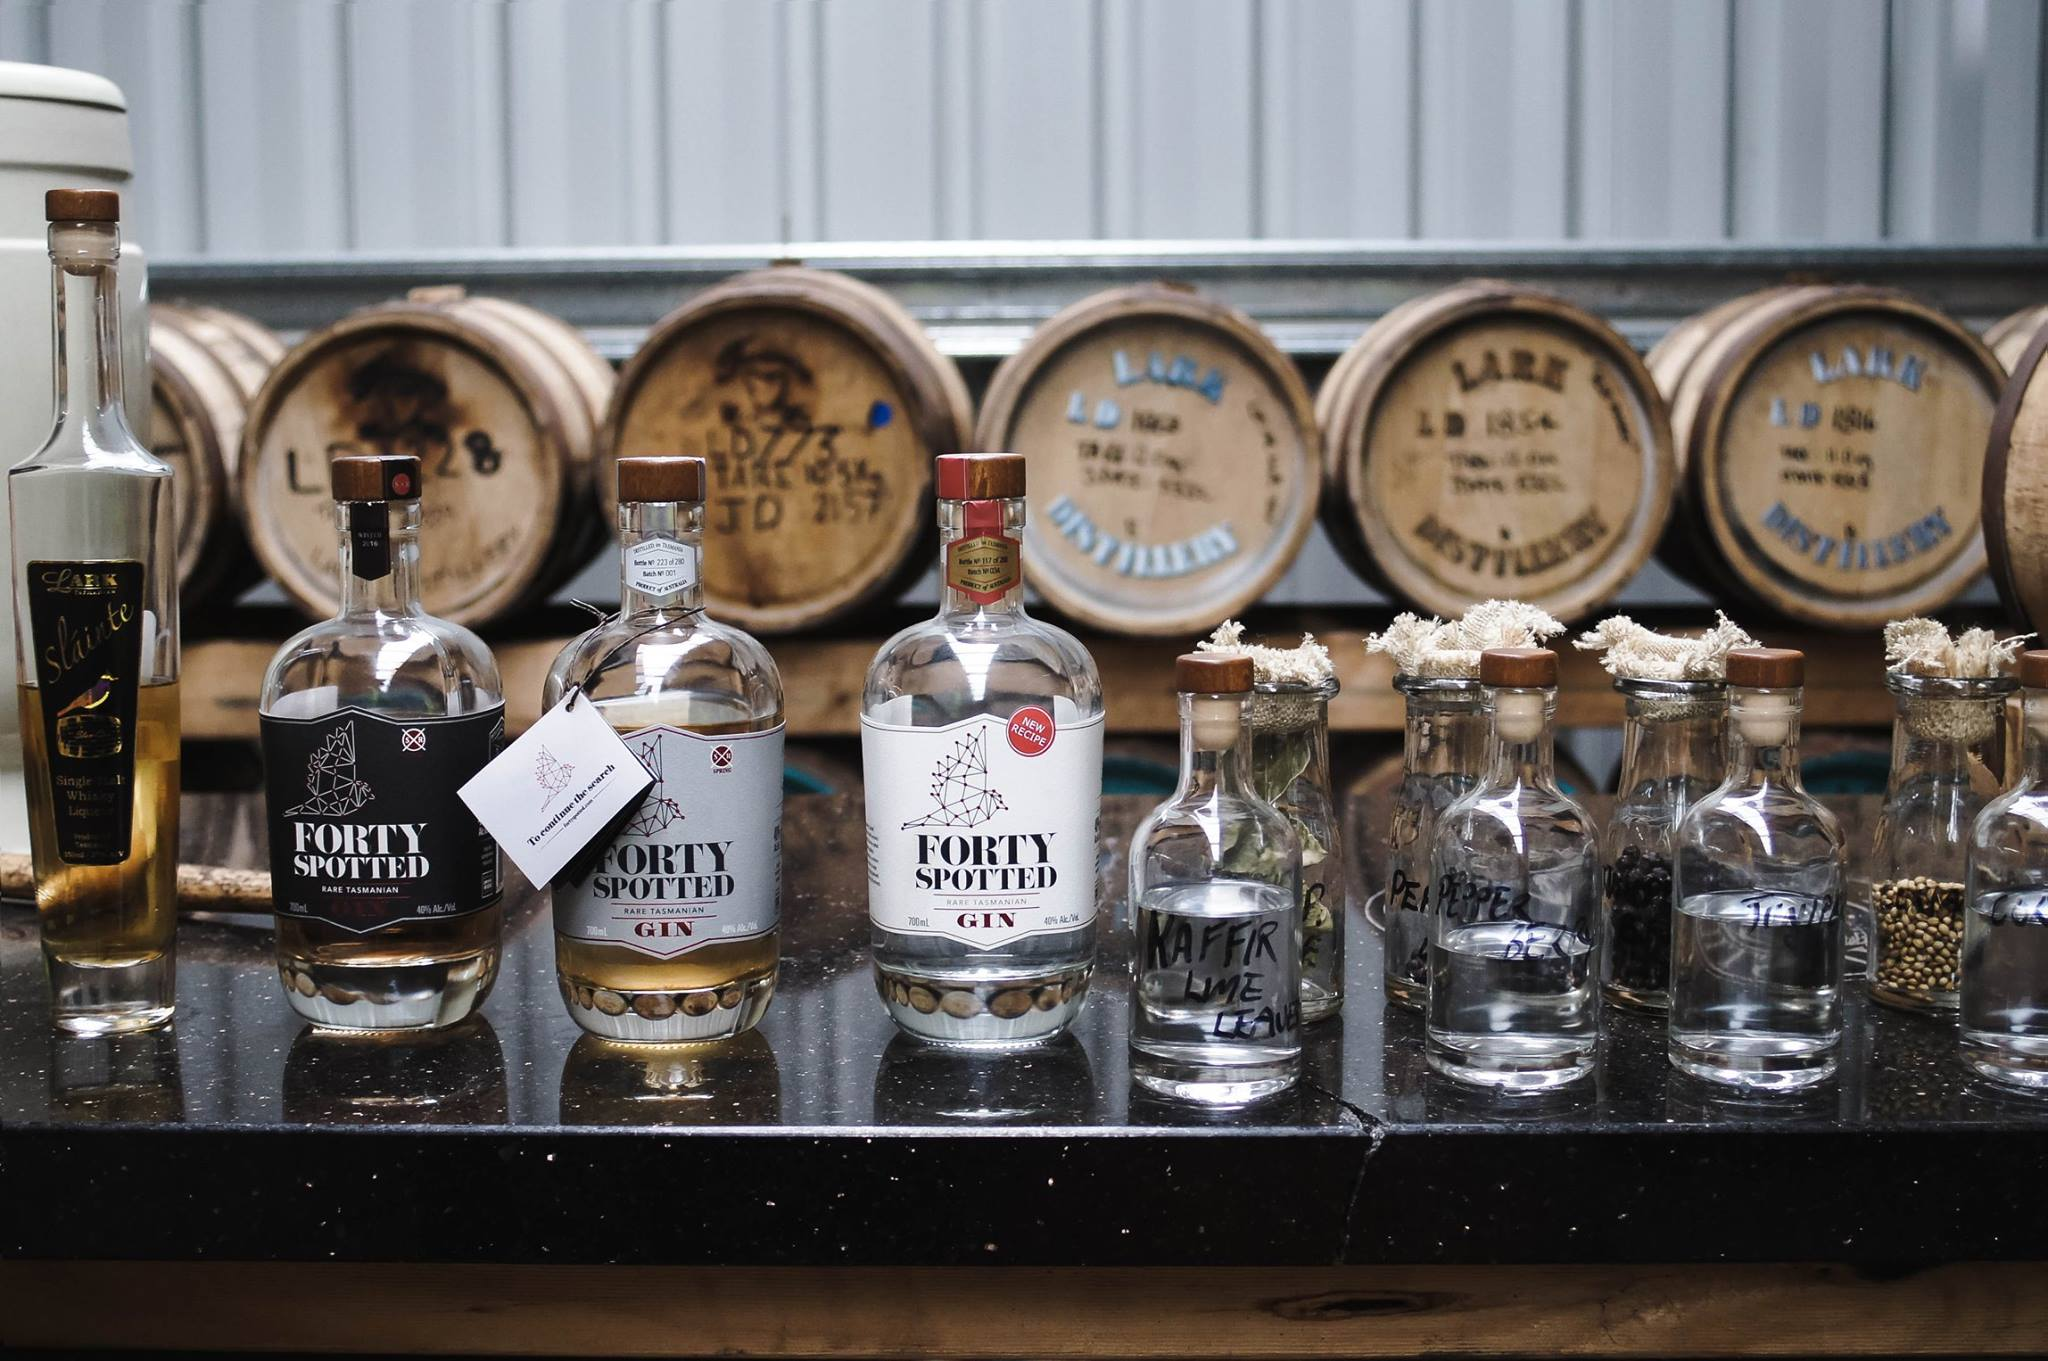 forty spotted gin & barrels.jpg